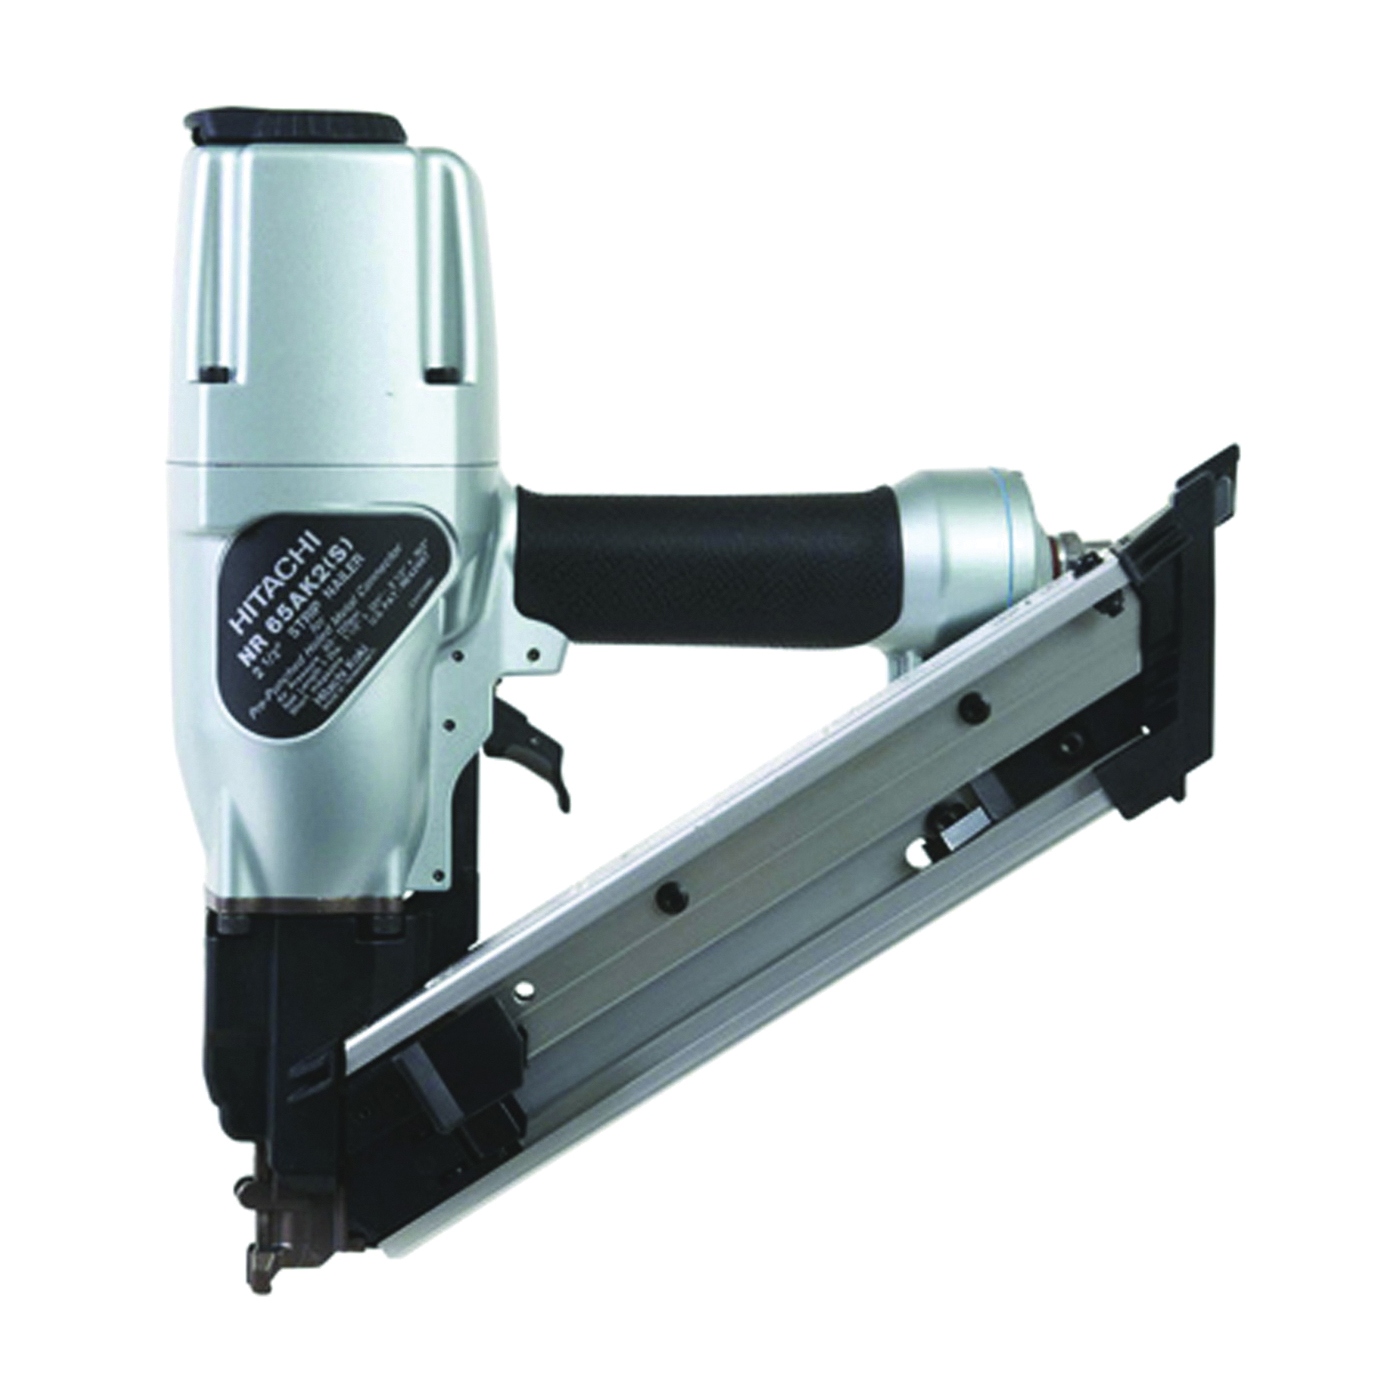 Picture of HITACHI NR65AK2(S) Strip Nailer, 22 Magazine, 36 deg Collation, Paper Tape Collation, 0.063 cu-ft/Cycle Air